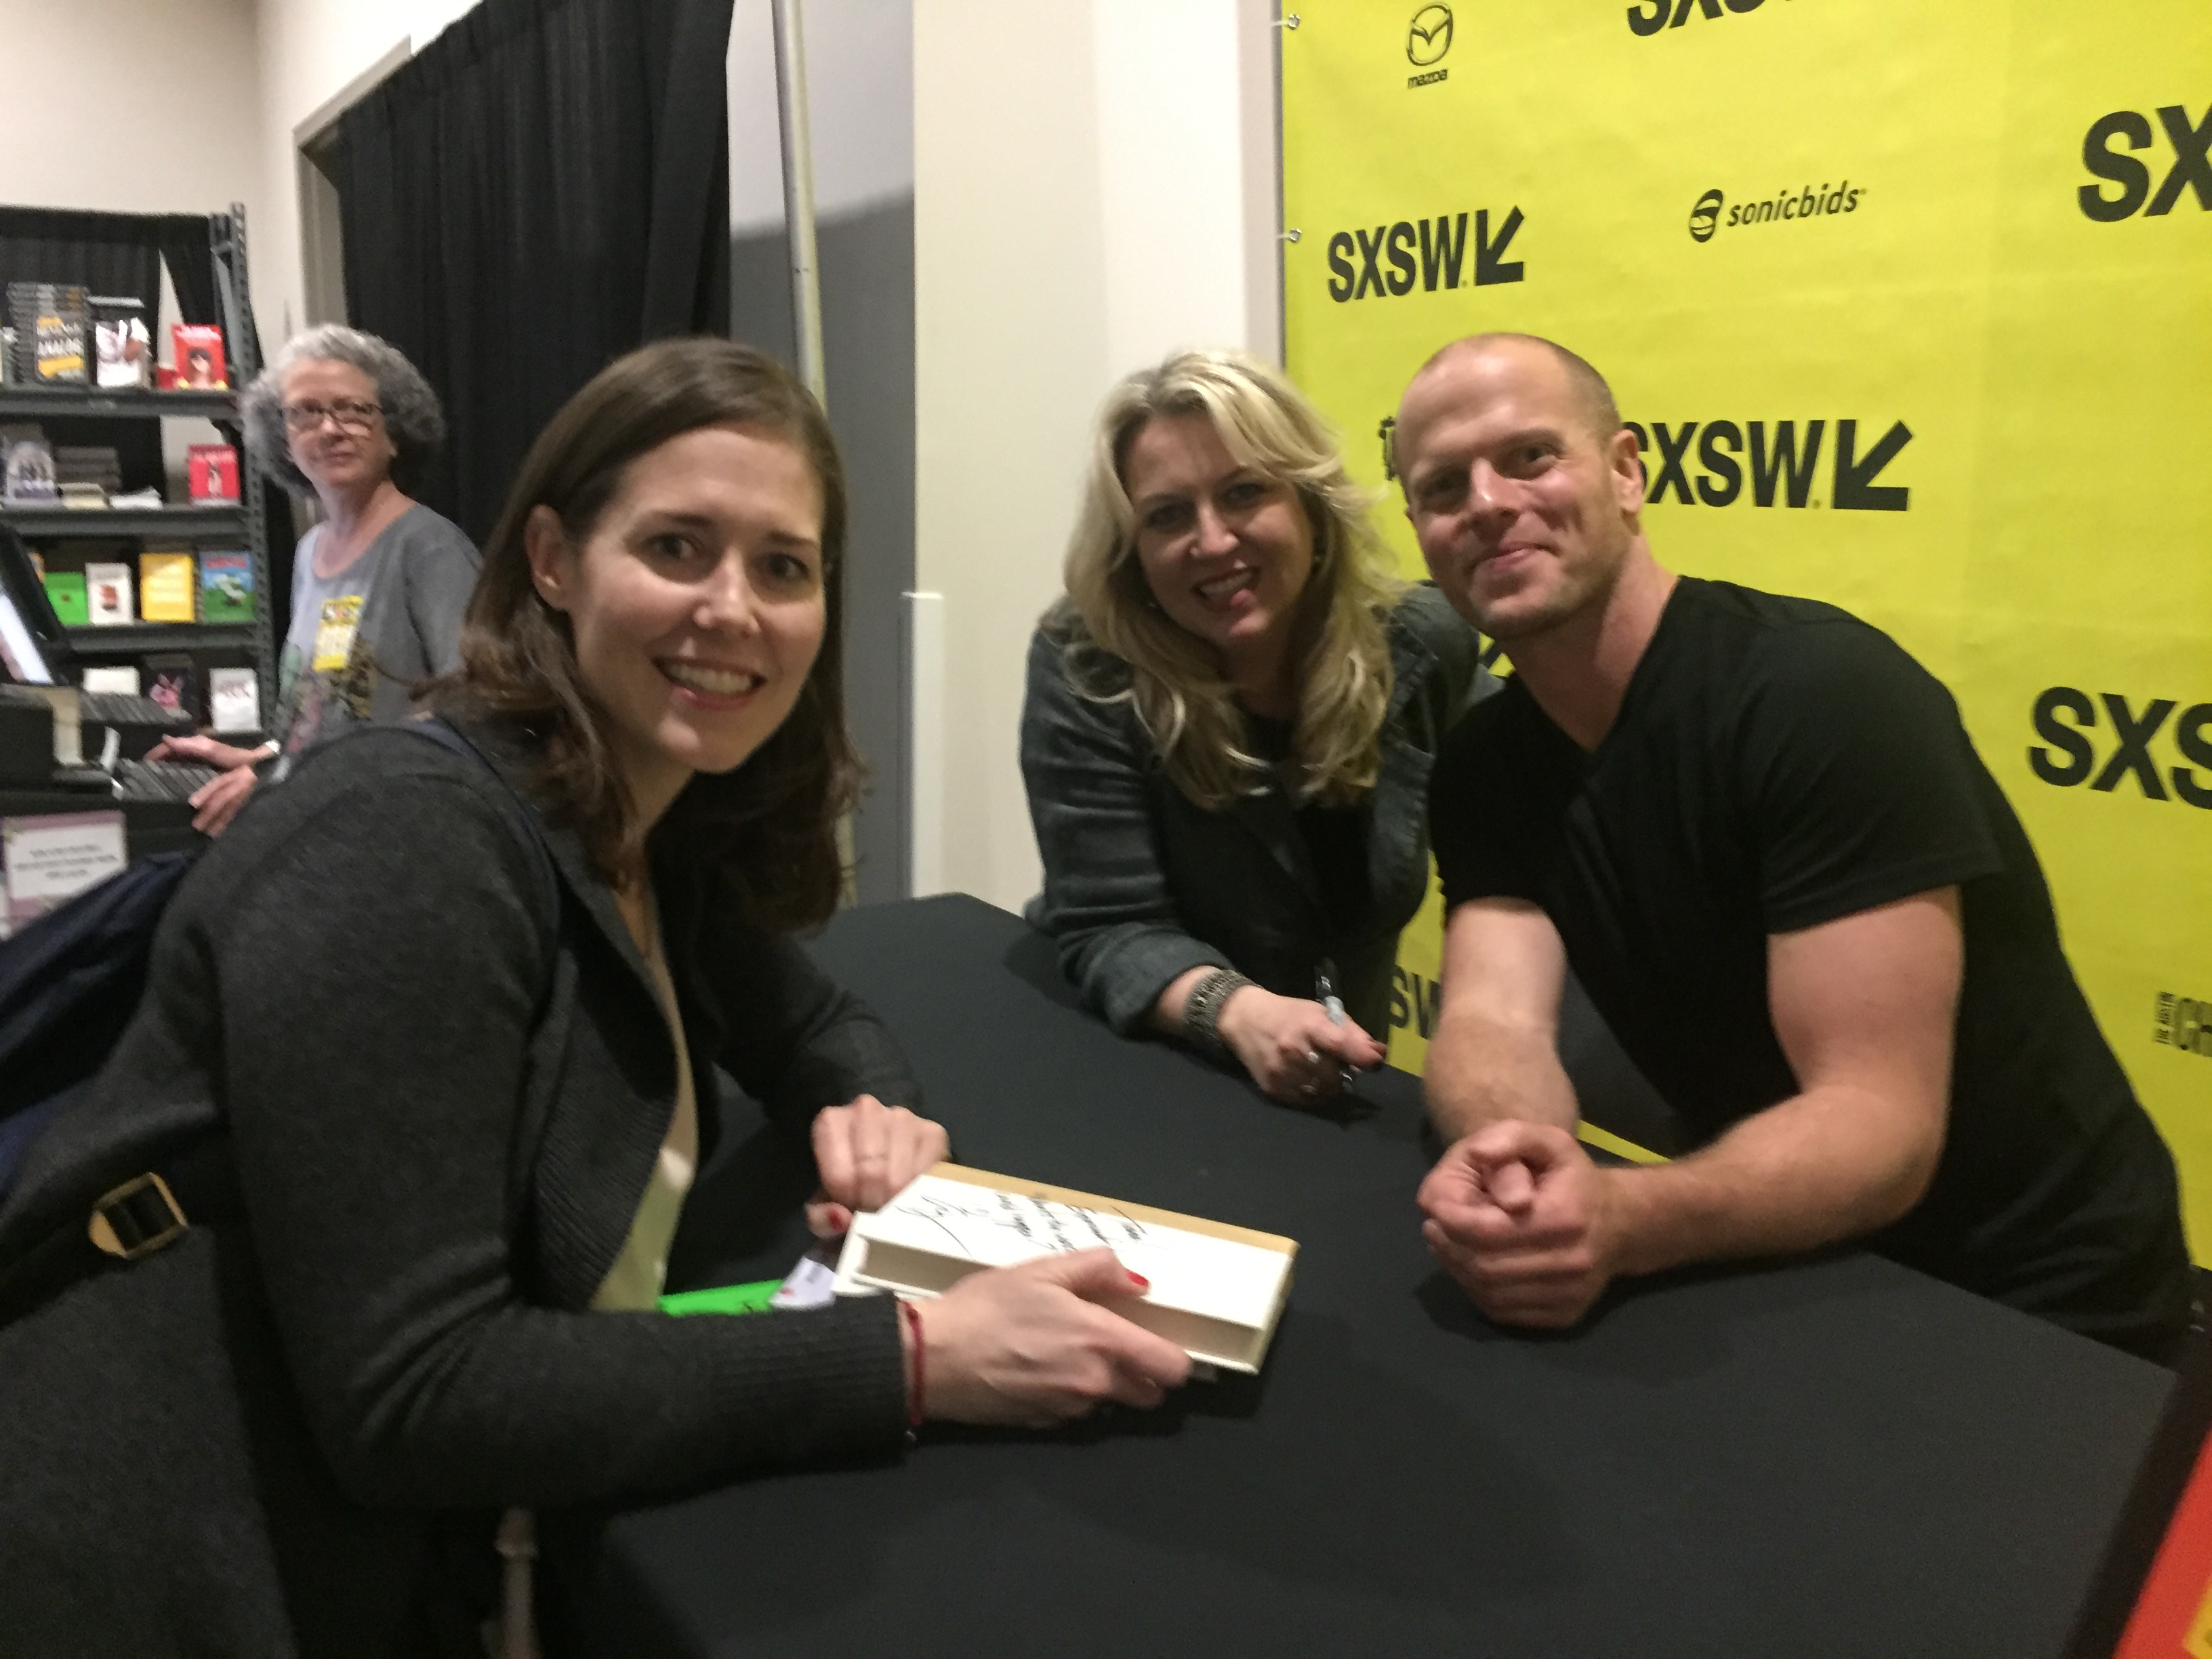 Book signing with Tim Ferris and Cheryl Strayed at SXSW